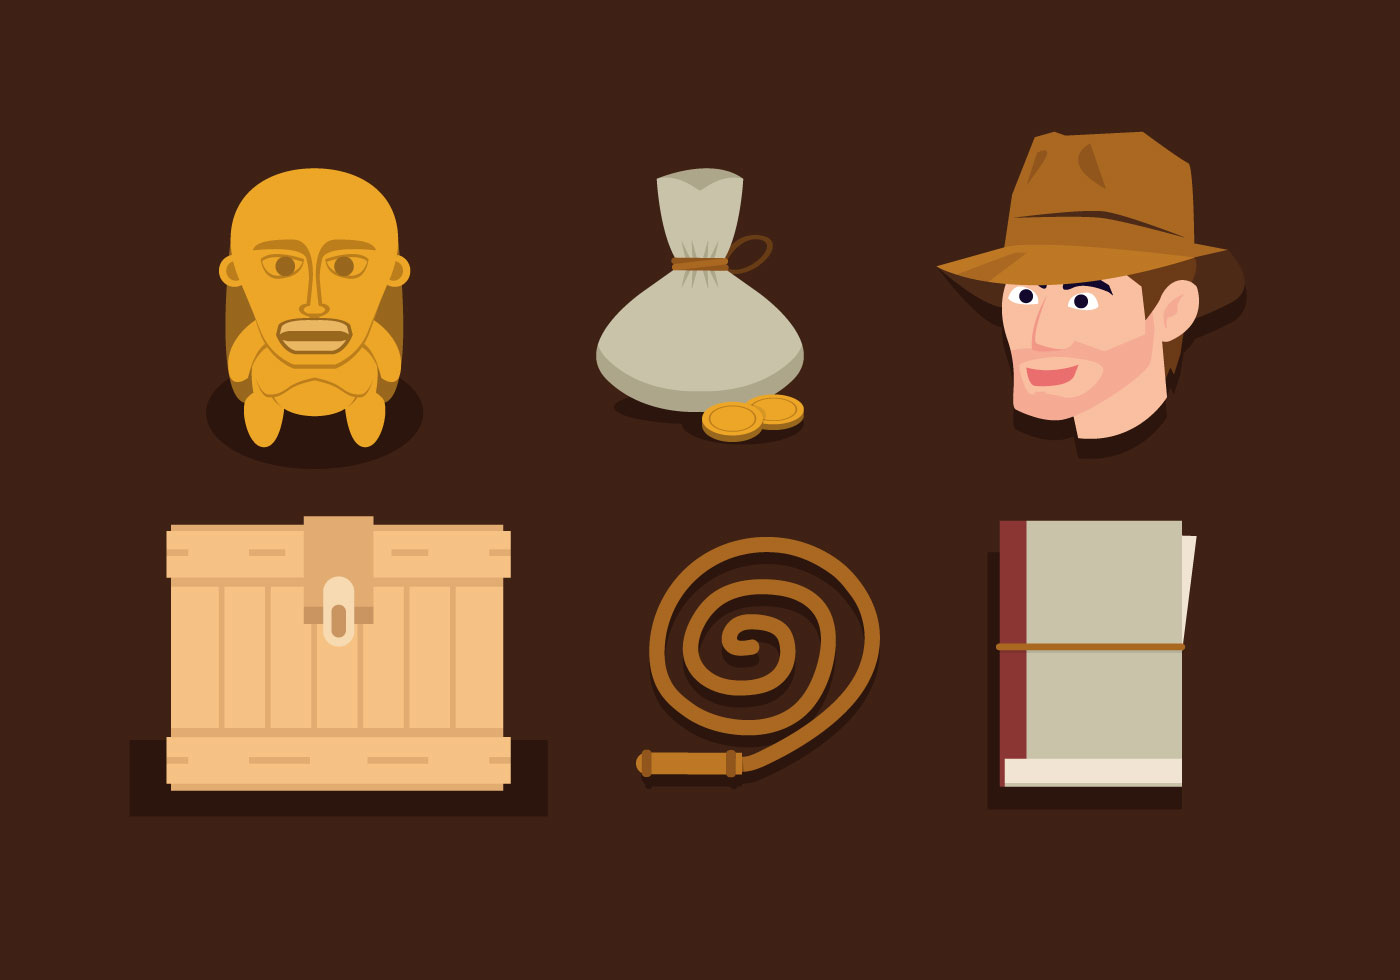 Vector Indiana Jones - Download Free Vectors, Clipart Graphics & Vector Art